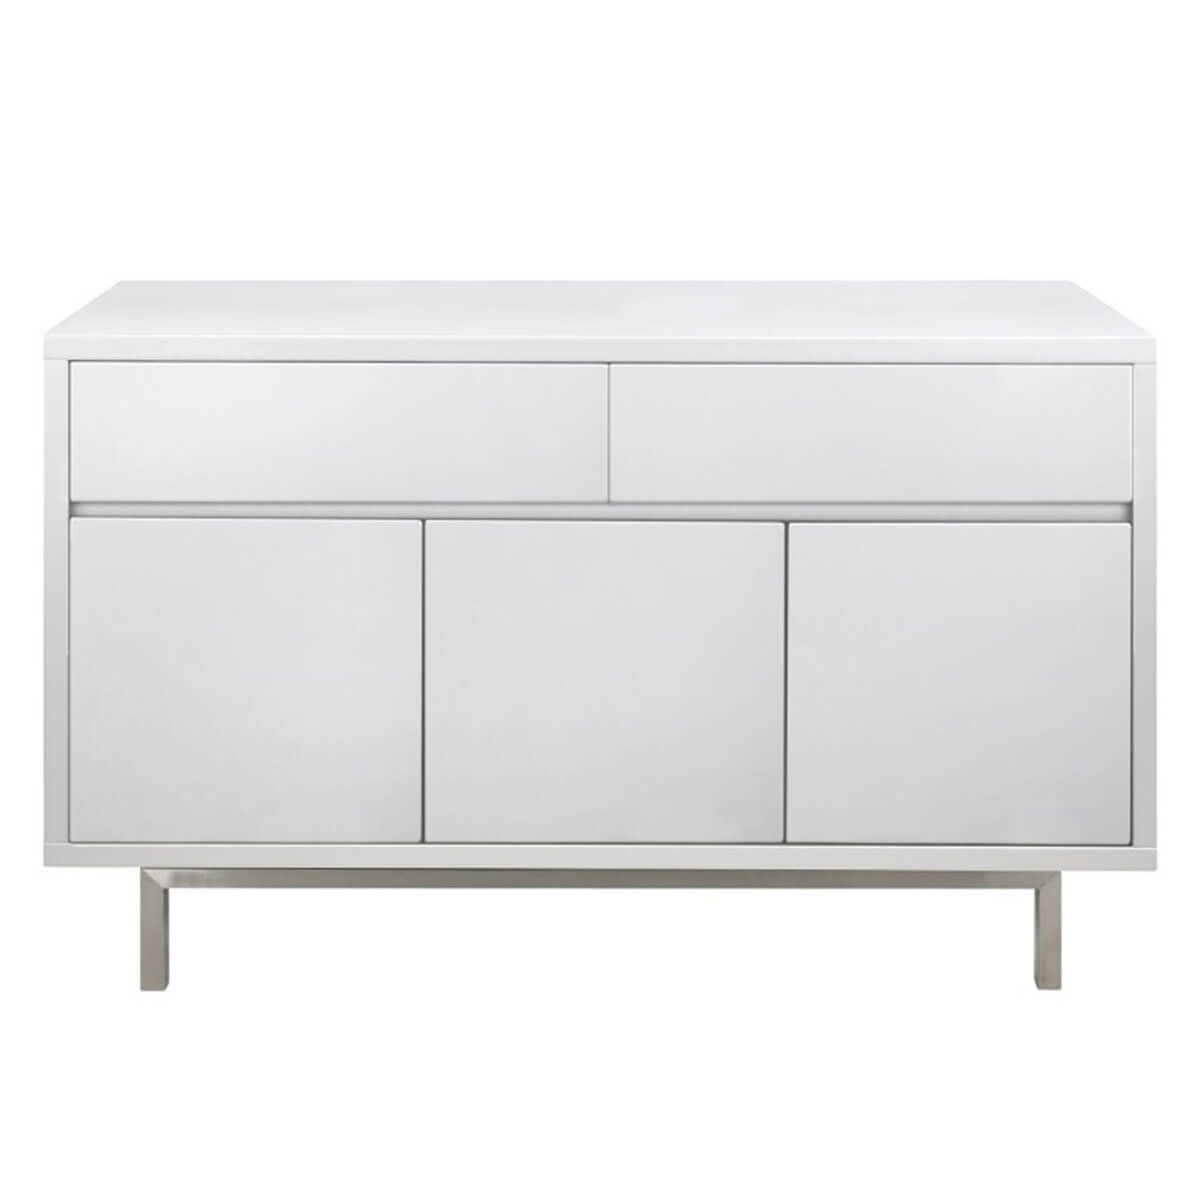 Miami White High Gloss Sideboard 3 Door 2 Drawer